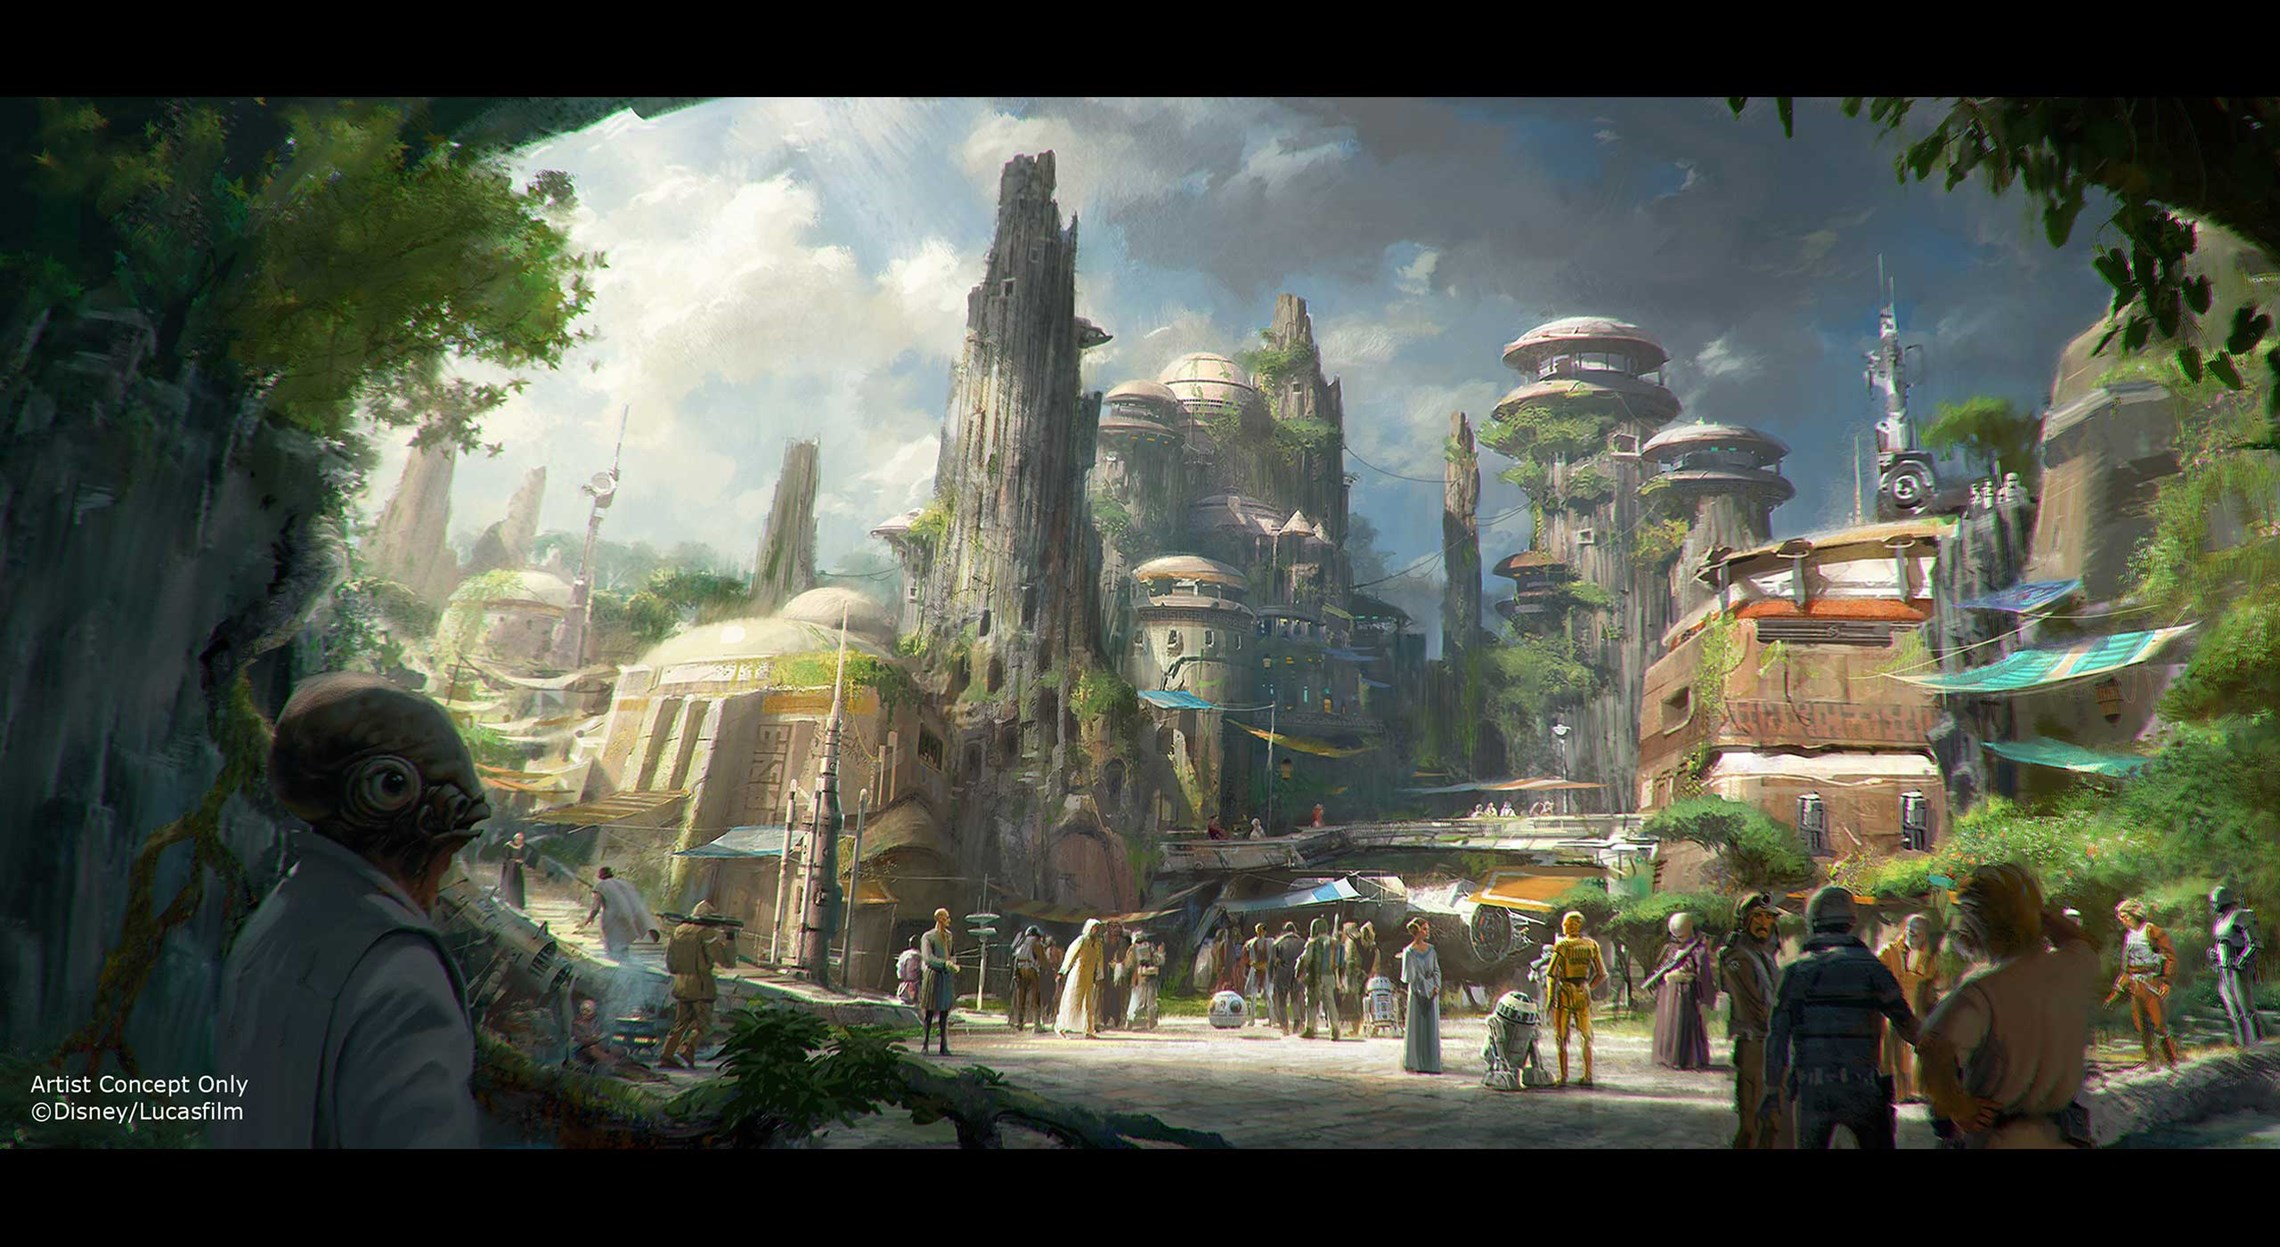 Star Wars themed land coming to Disney's Hollywood Studios